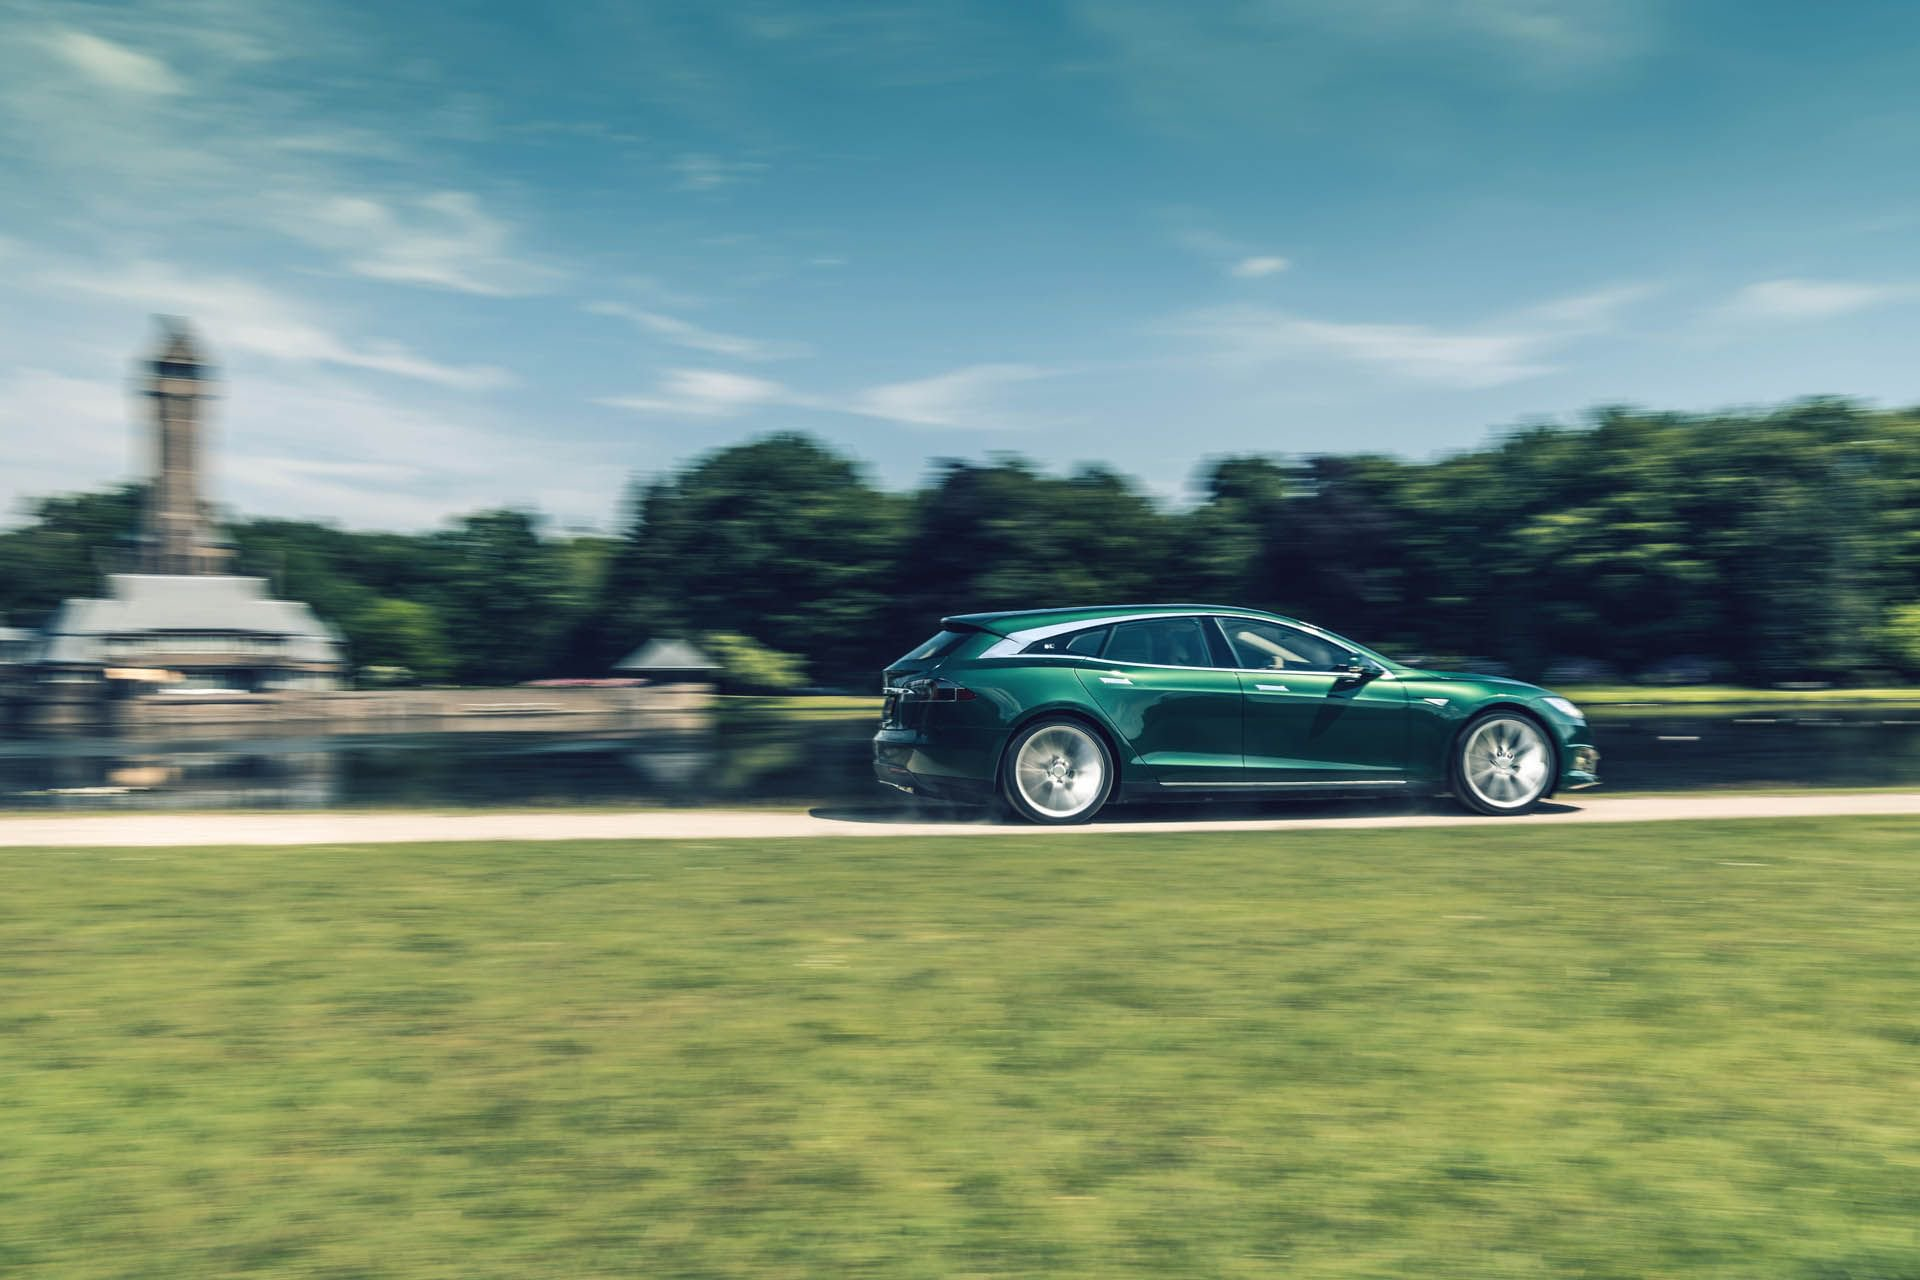 tesla-model-s-shooting-brake-remetzcar-26